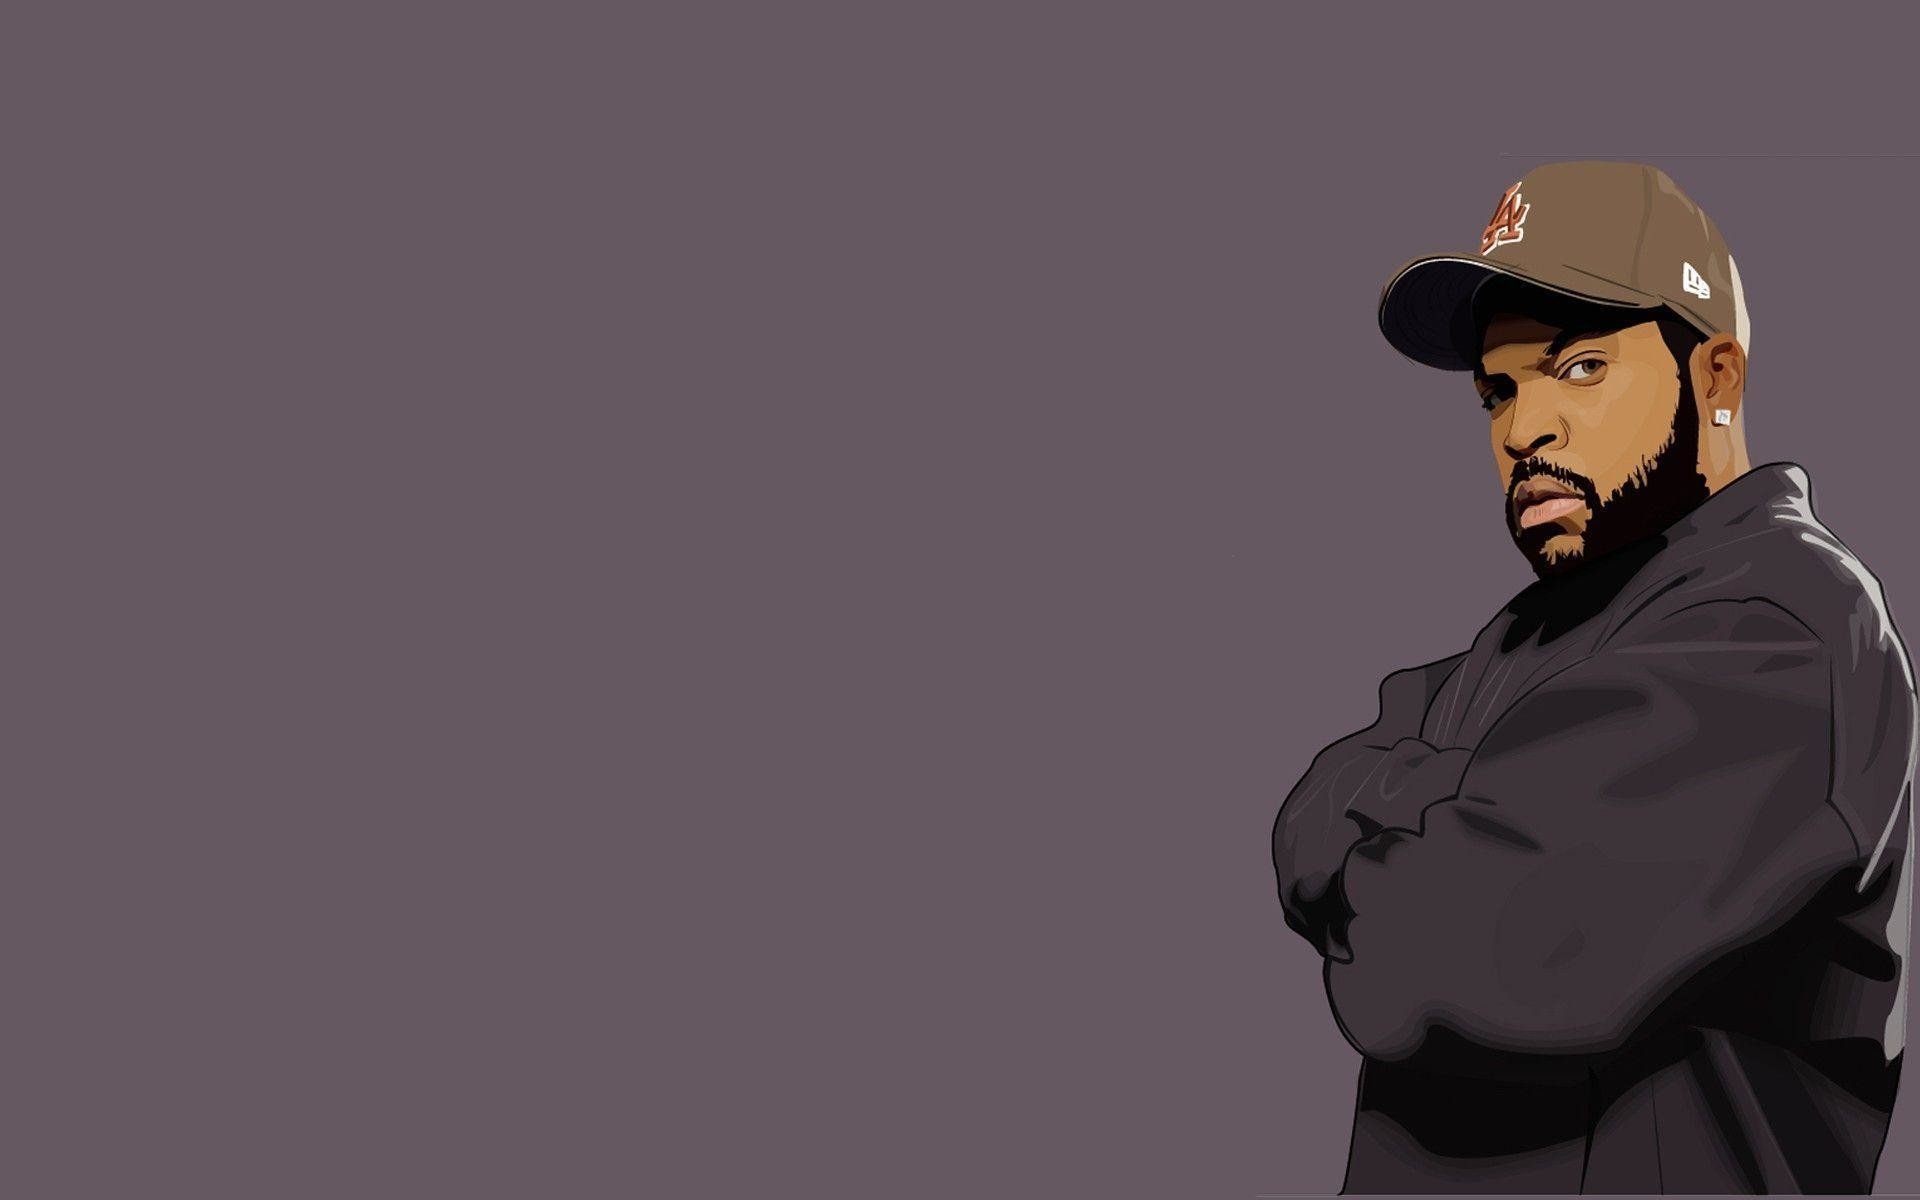 Ice Cube Wallpaper 1